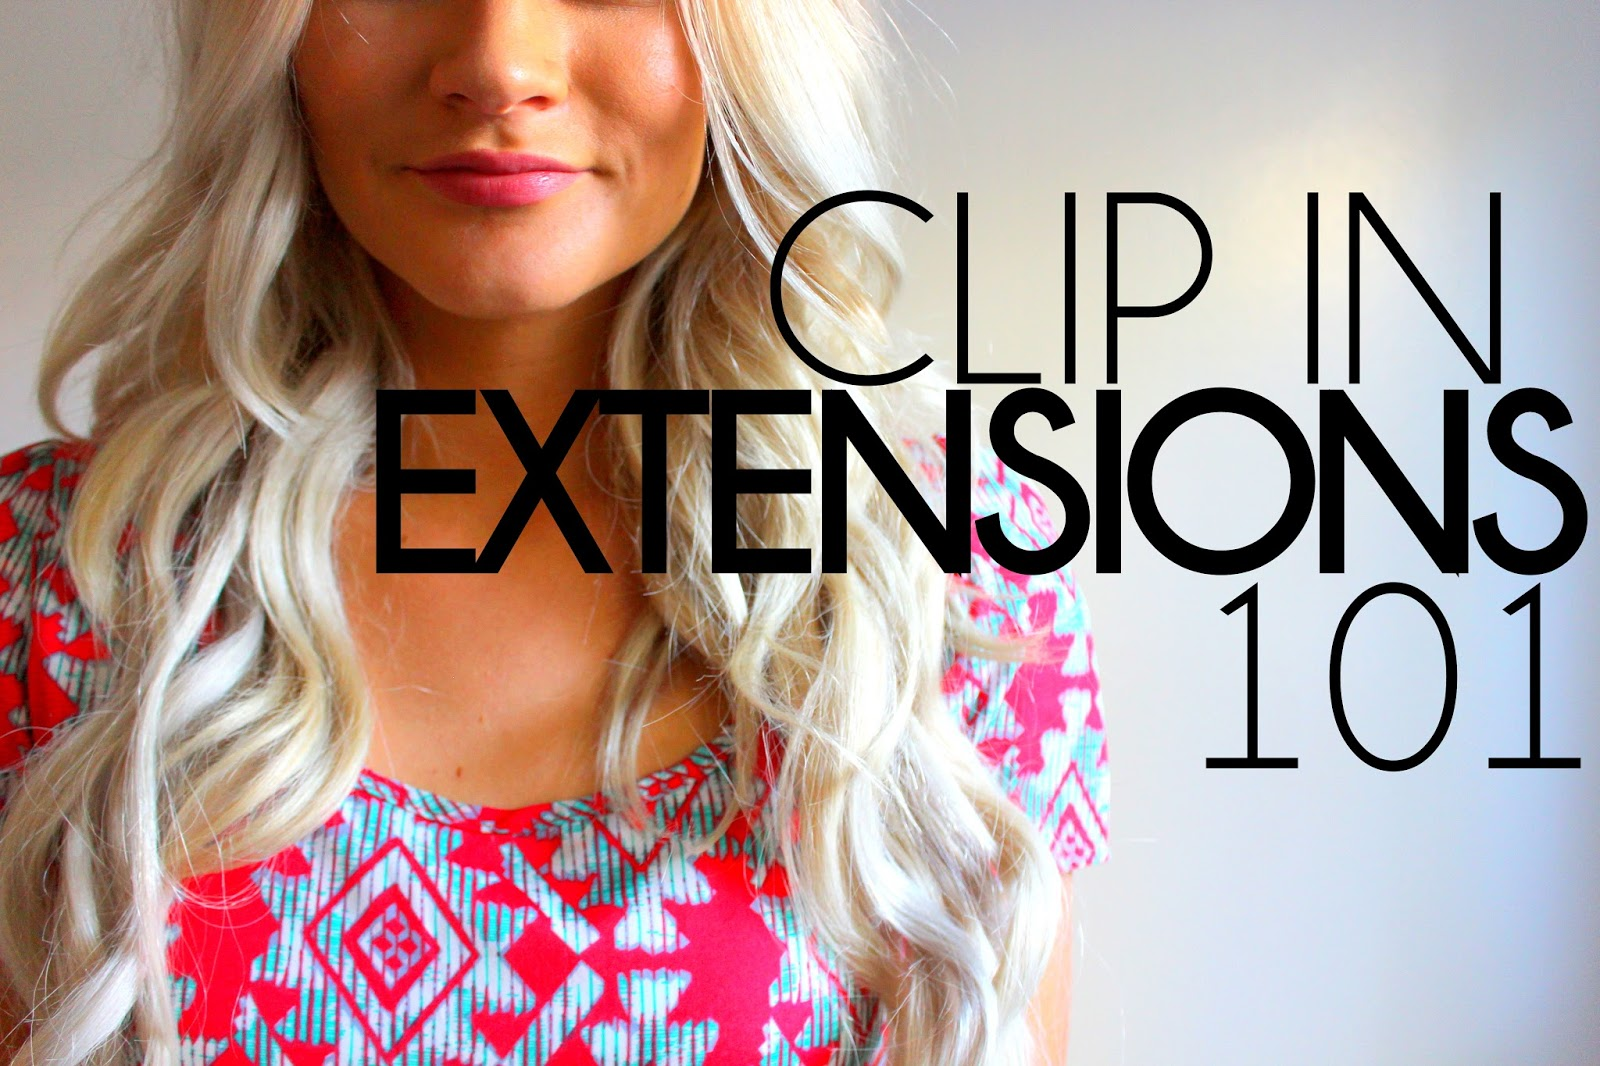 Extensions clip nice